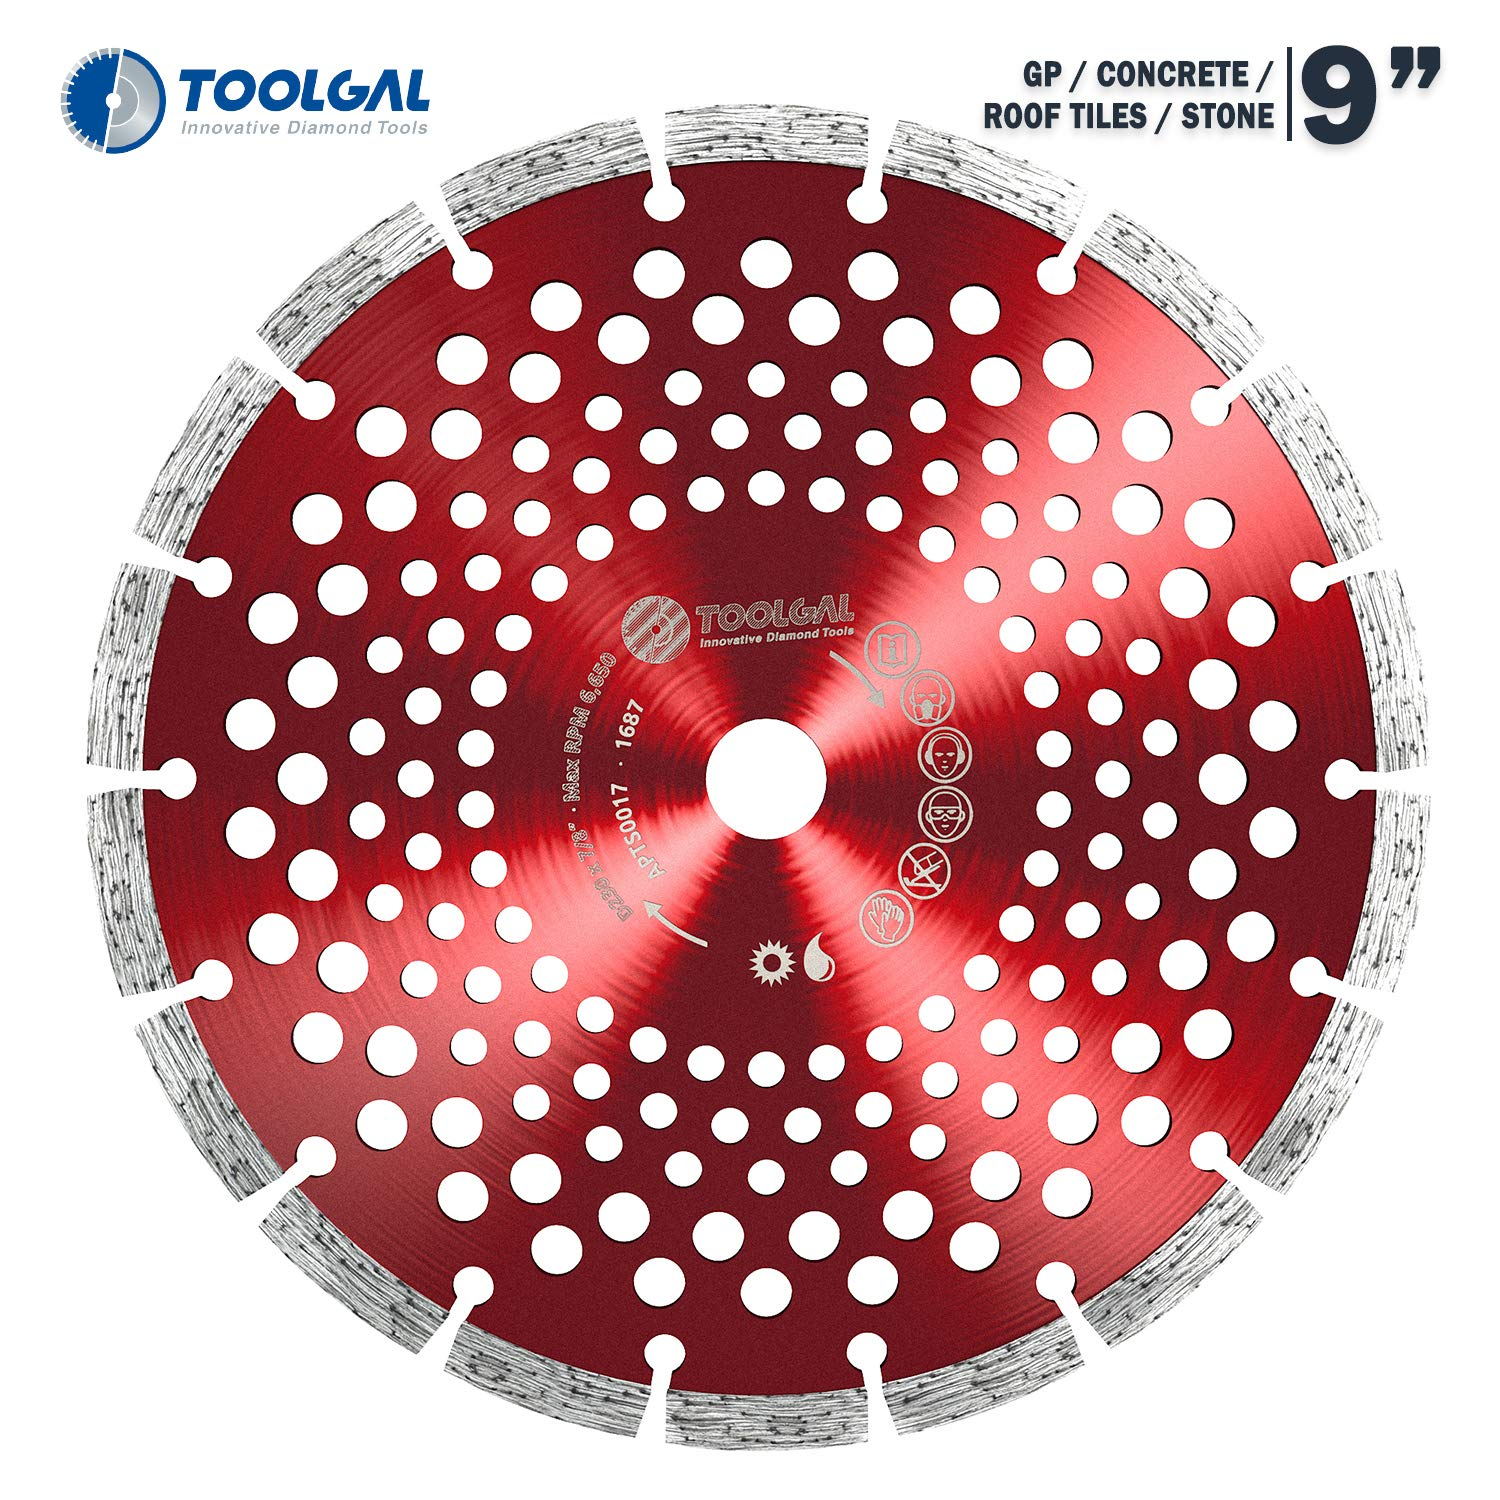 """TOOLGAL Diamond Blade 9"""" for Masonry - Wet and Dry Cutting of Concrete/Tiles/Stone - ⅞"""" Arbor fit to Angle Grinders, Circular Saws, Masonry Saws, Tilesaw and Cutoff Cutters"""